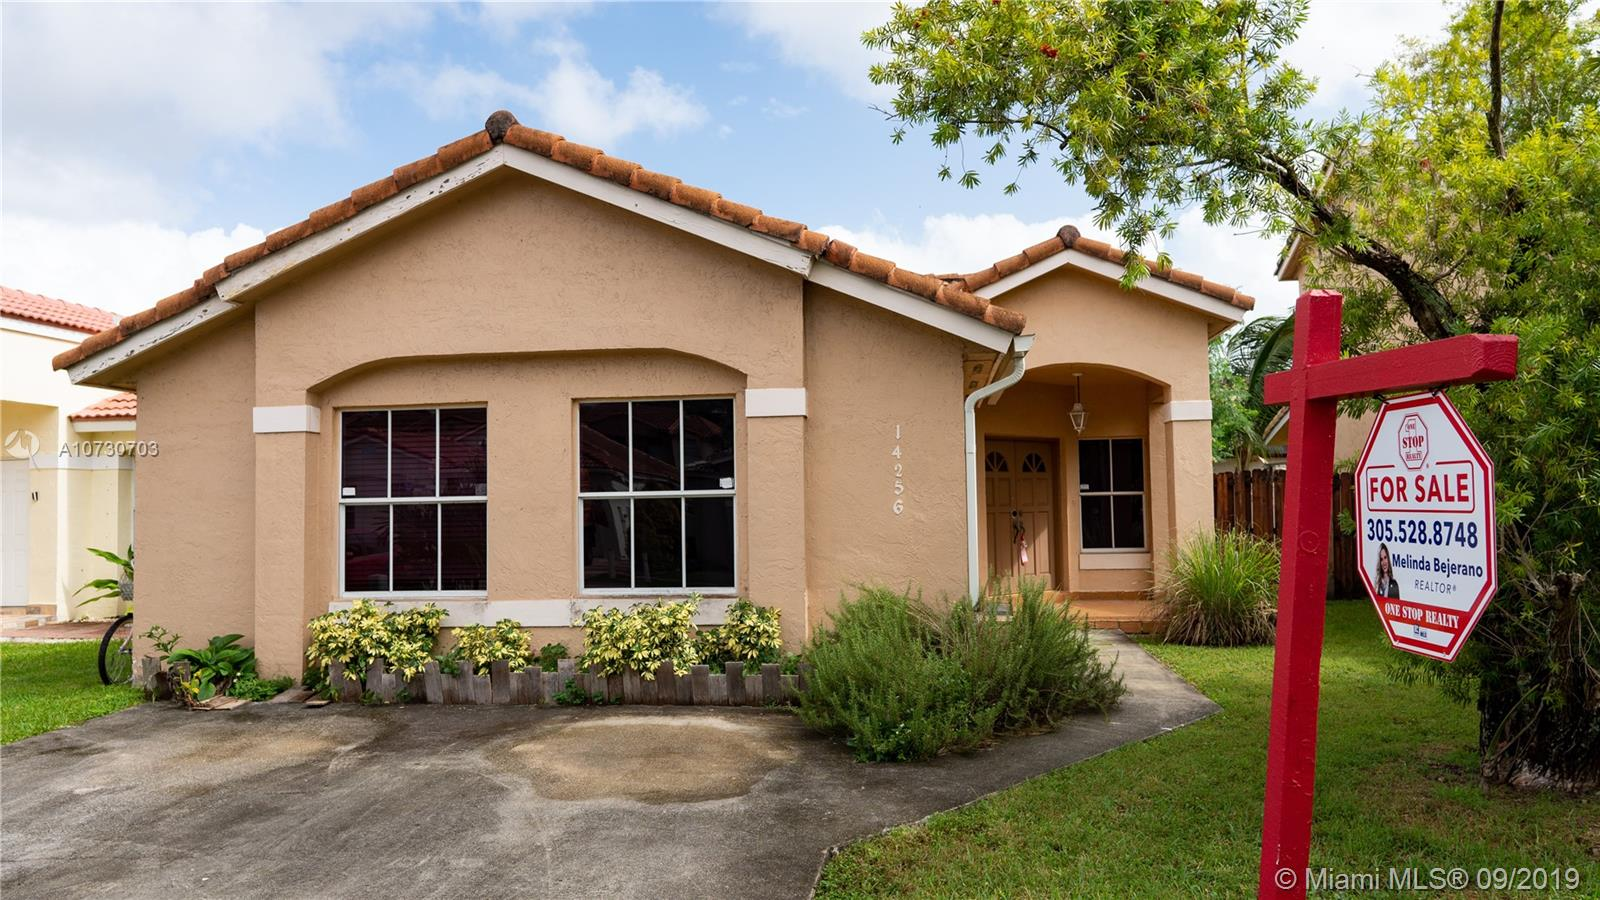 14256 SW 90th Ter, Kendall, Florida